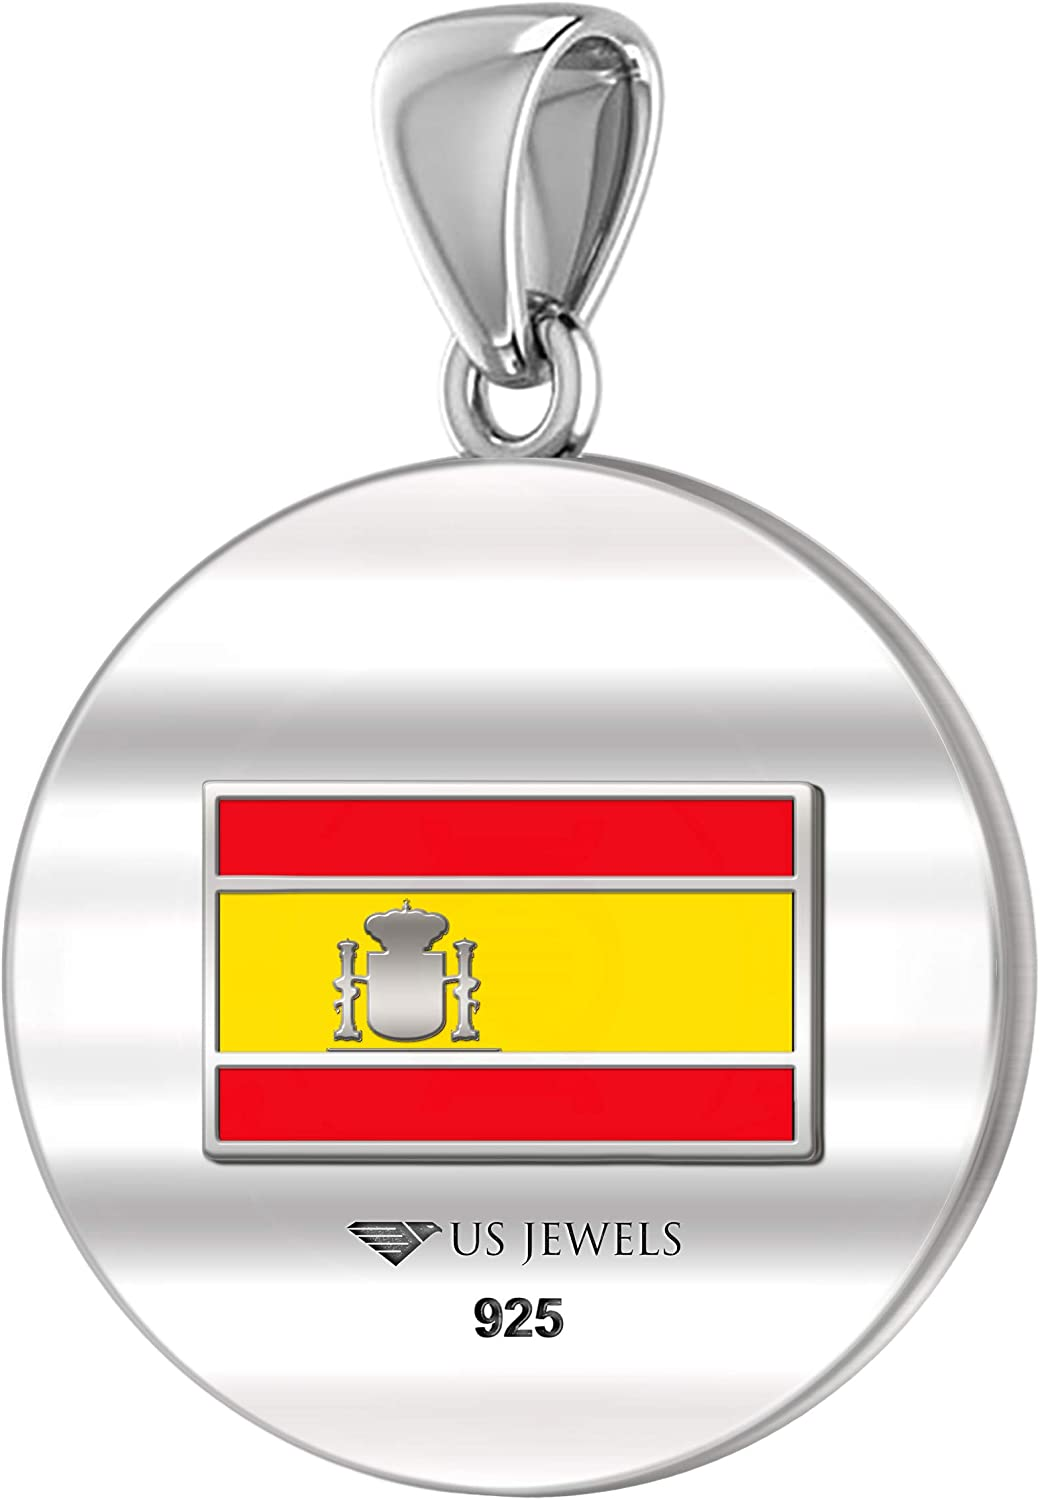 0.925 Sterling Silver 1in DNA Certified Italian Heritage Pendant Medal with Flag Necklace 18in to 24in